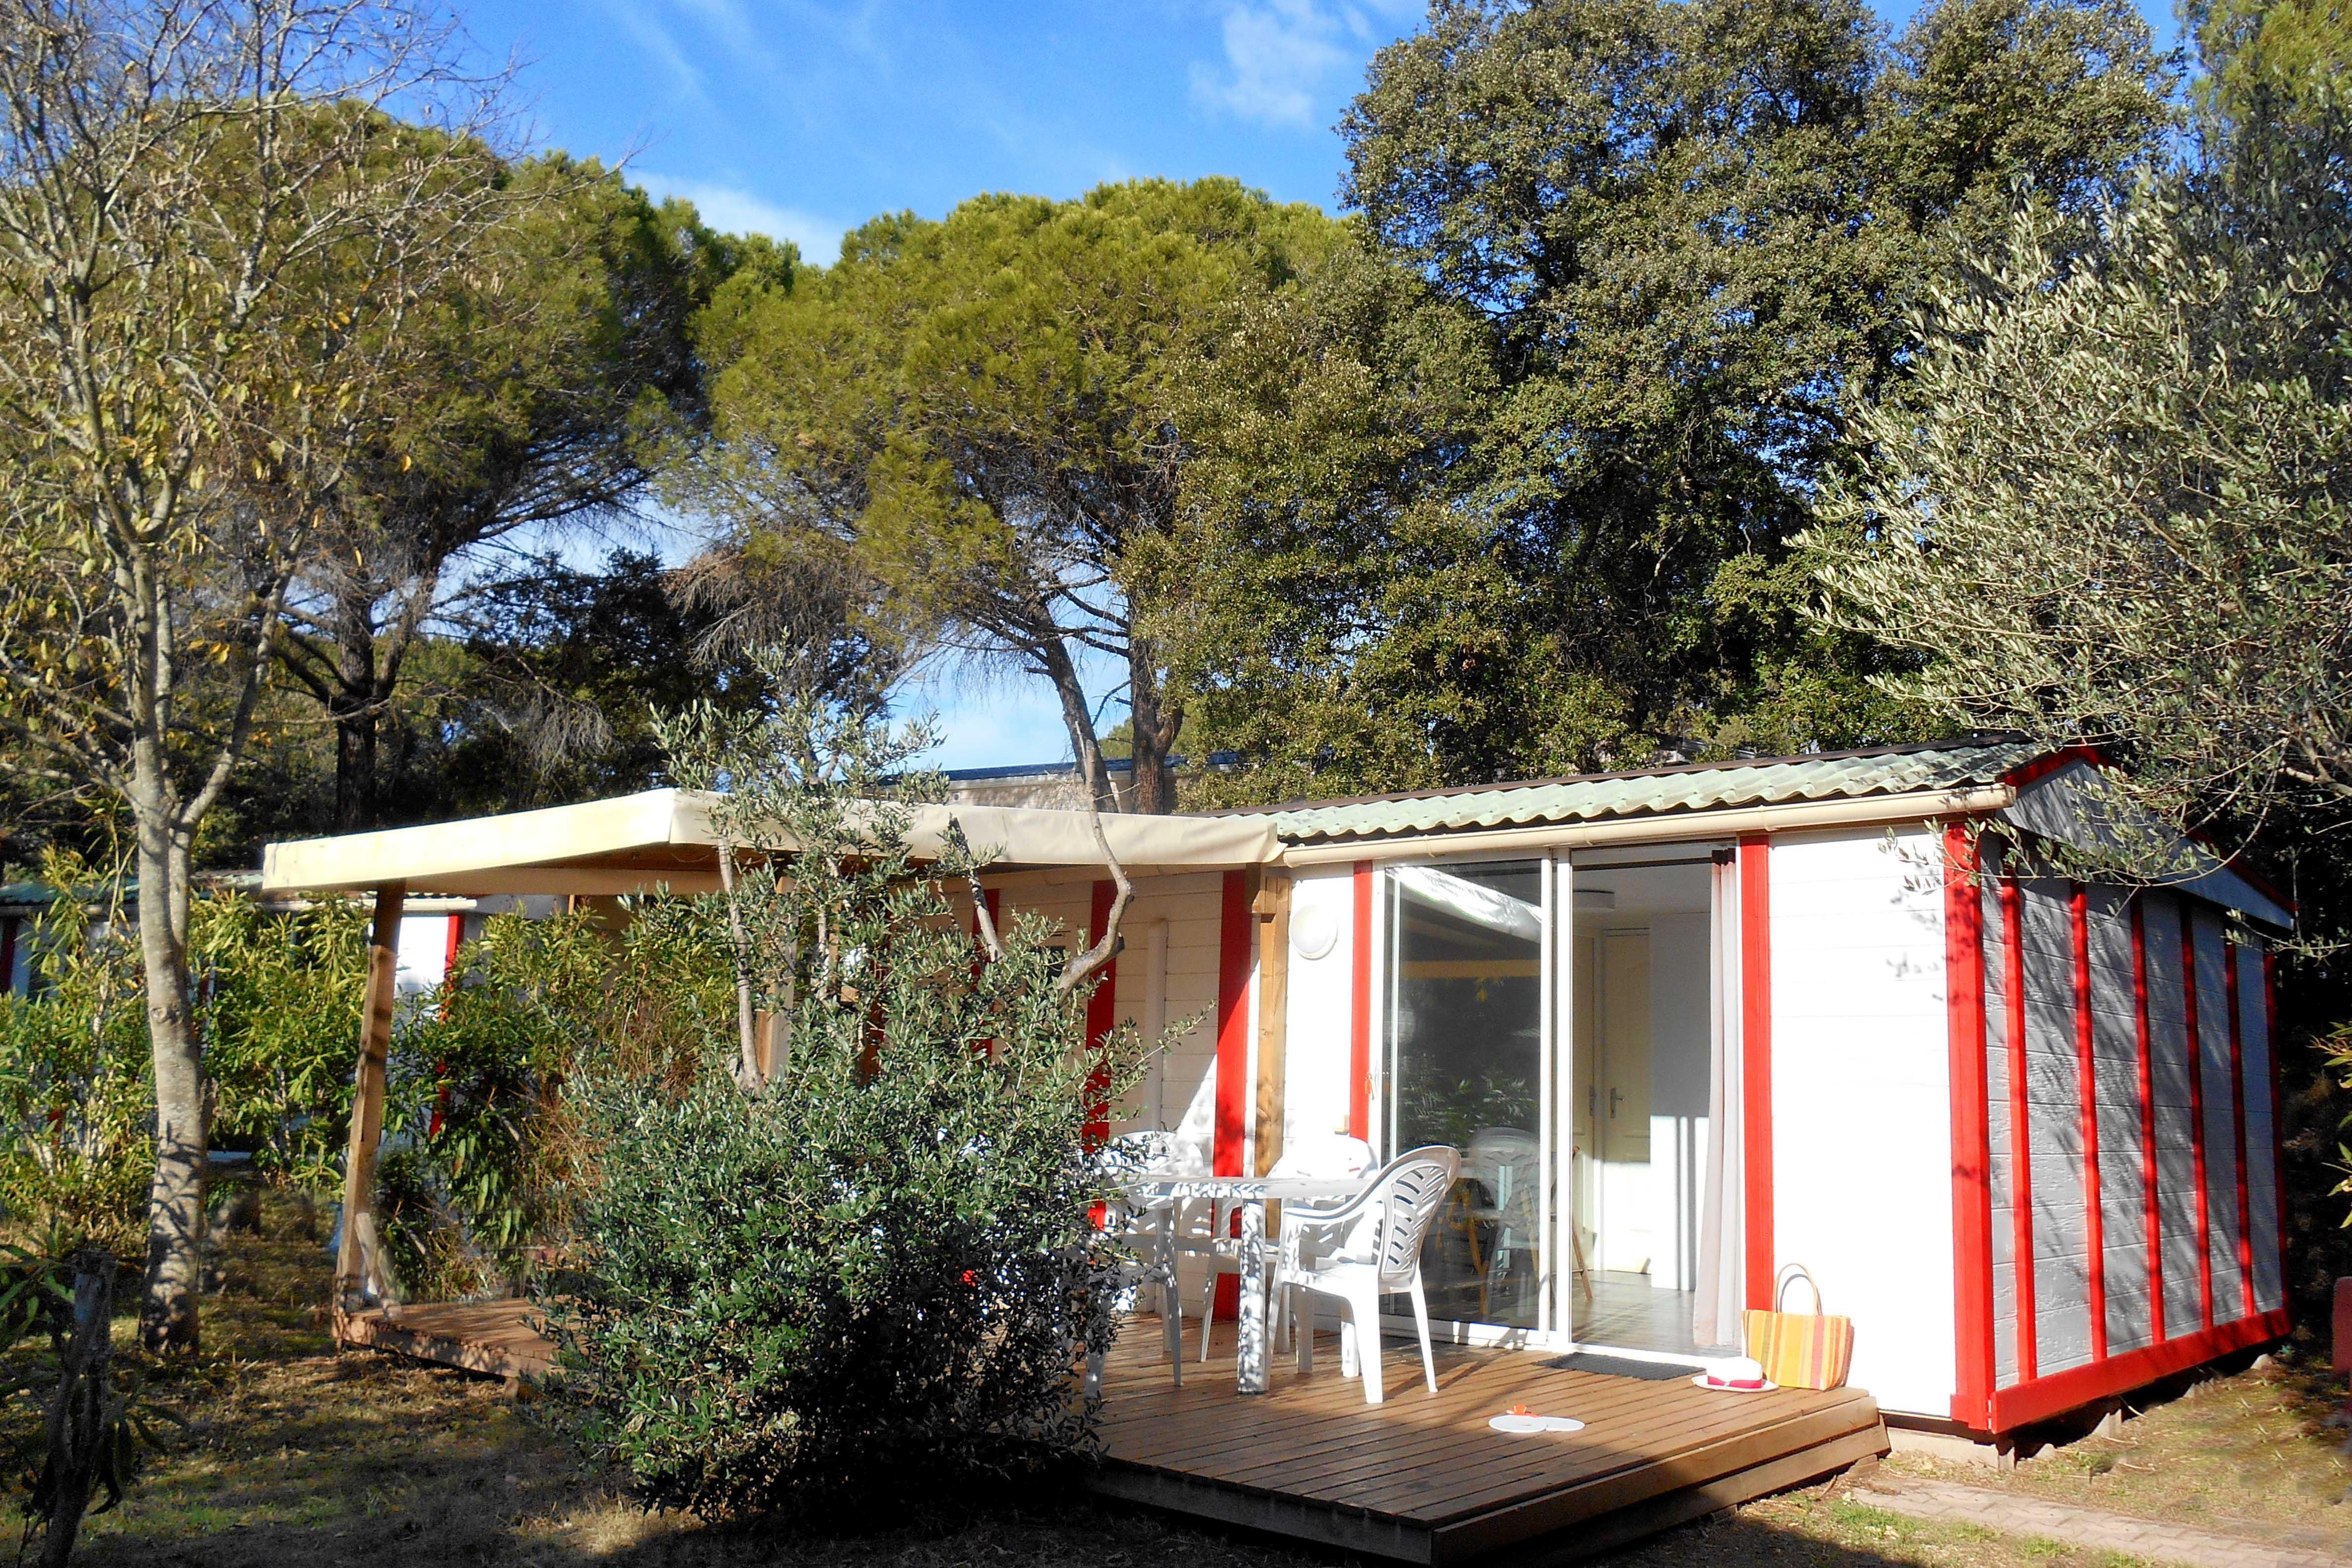 Location - Chalet Uman 6 Pers. + 1 Place Véhicule. Confort - Camping Les Cigales